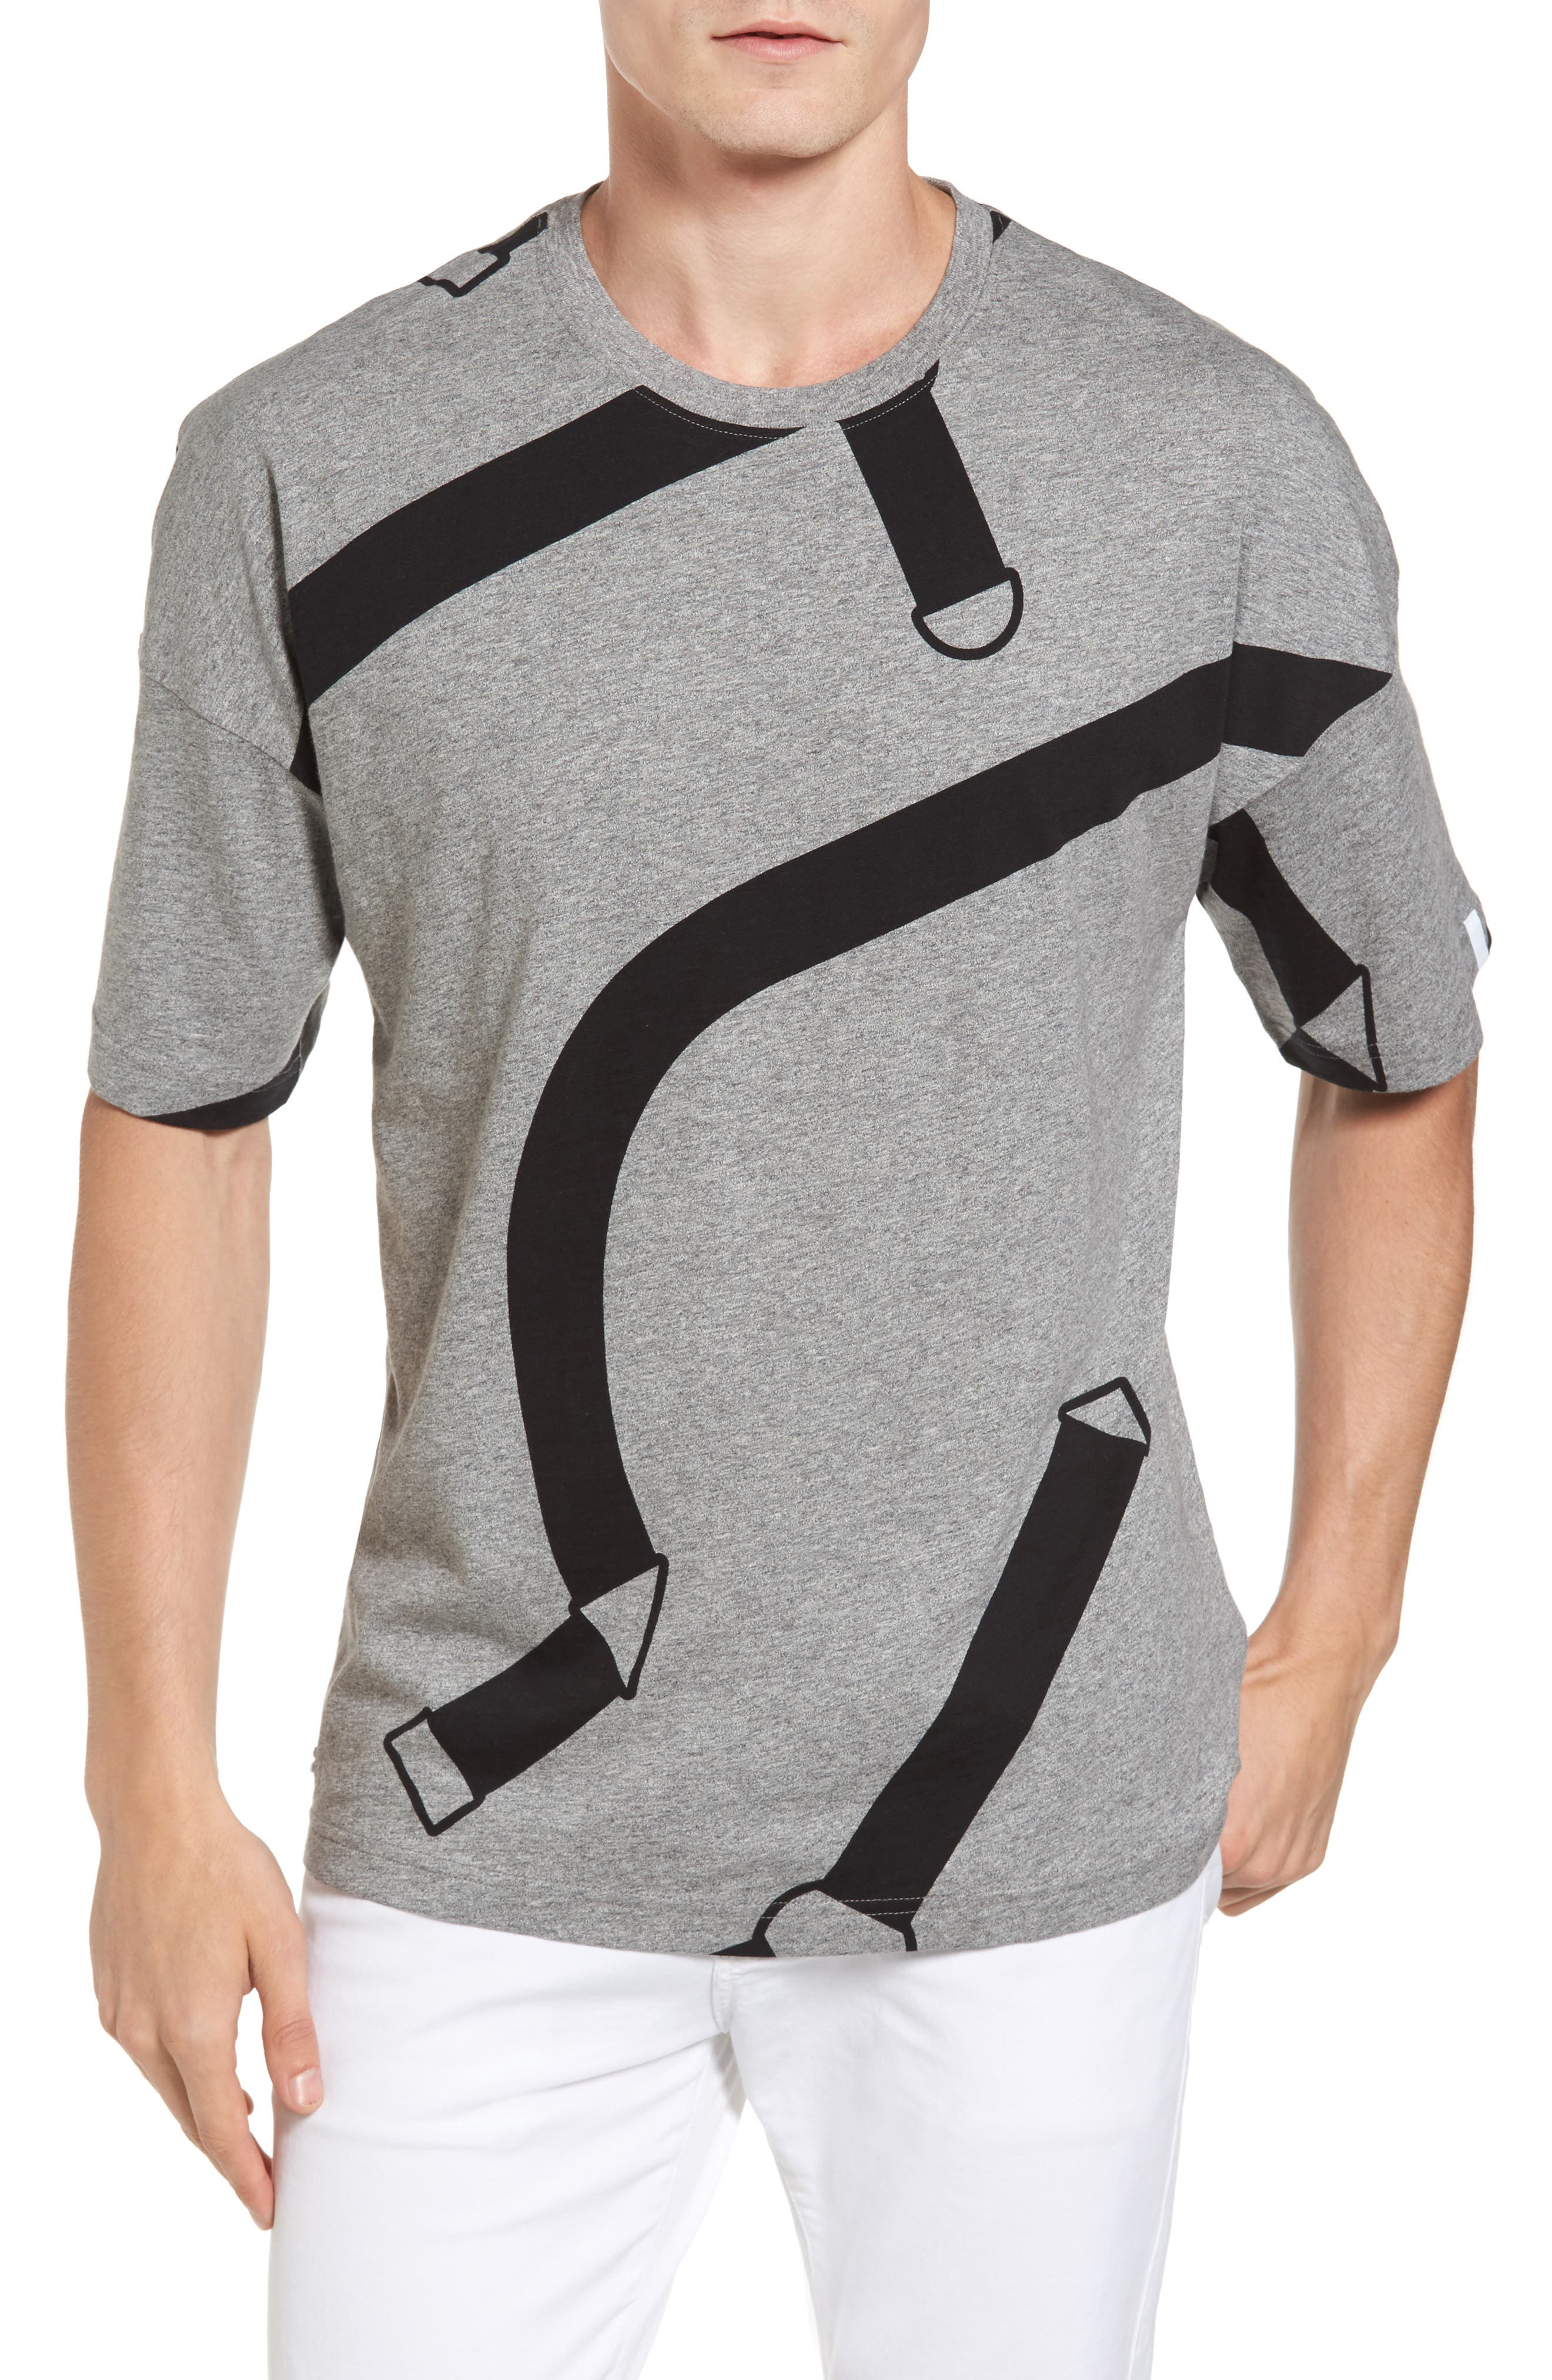 Lacoste L!VE Harness Print T-Shirt